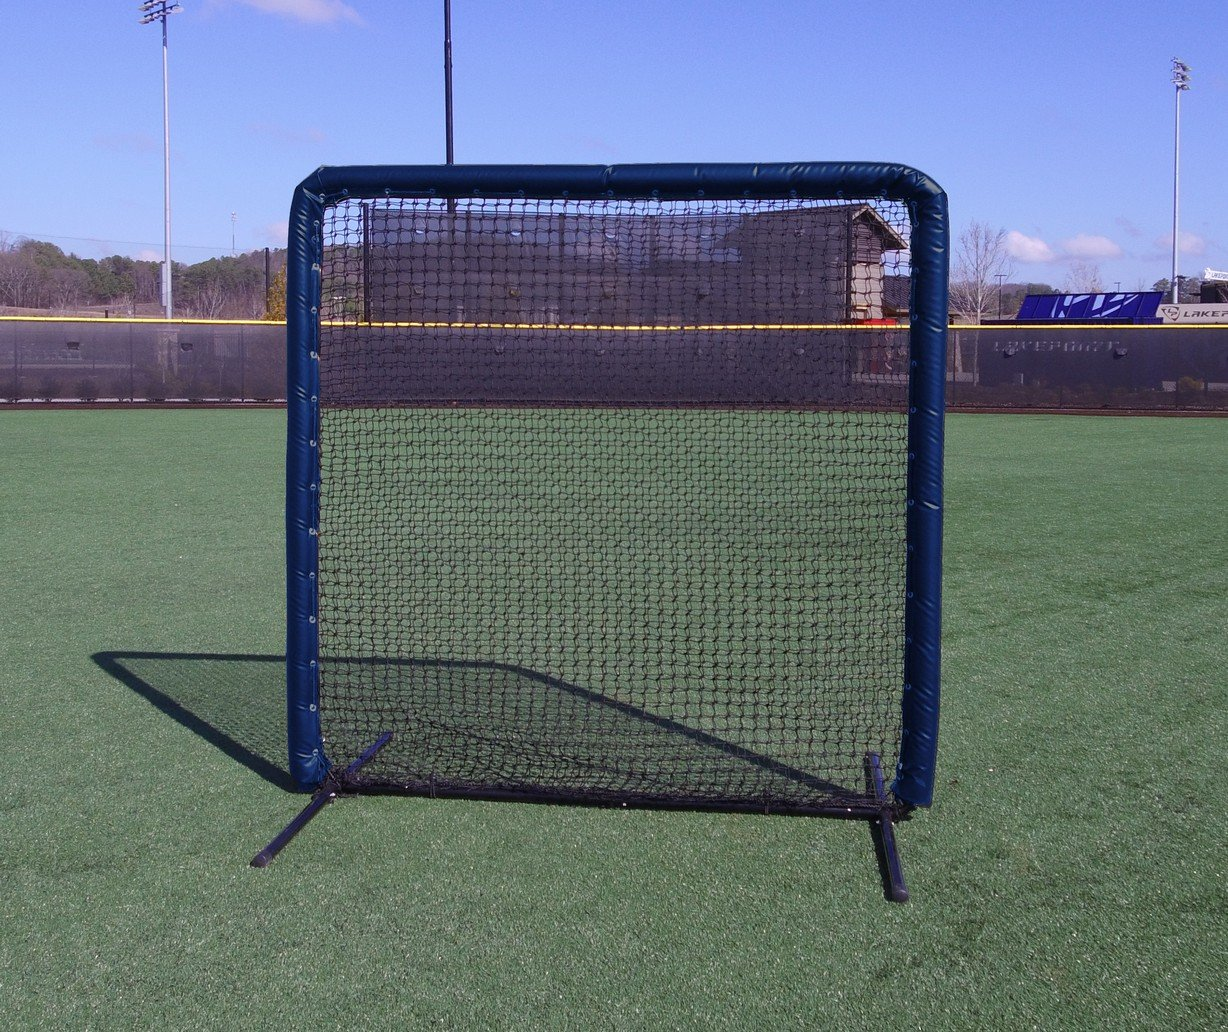 Armor Series 7X7 Protective Screen with Screen Bulletz. Baseball/Softball Padded Practice Screen Net with Vinyl Padding. Choose Color! (Navy) by Armor